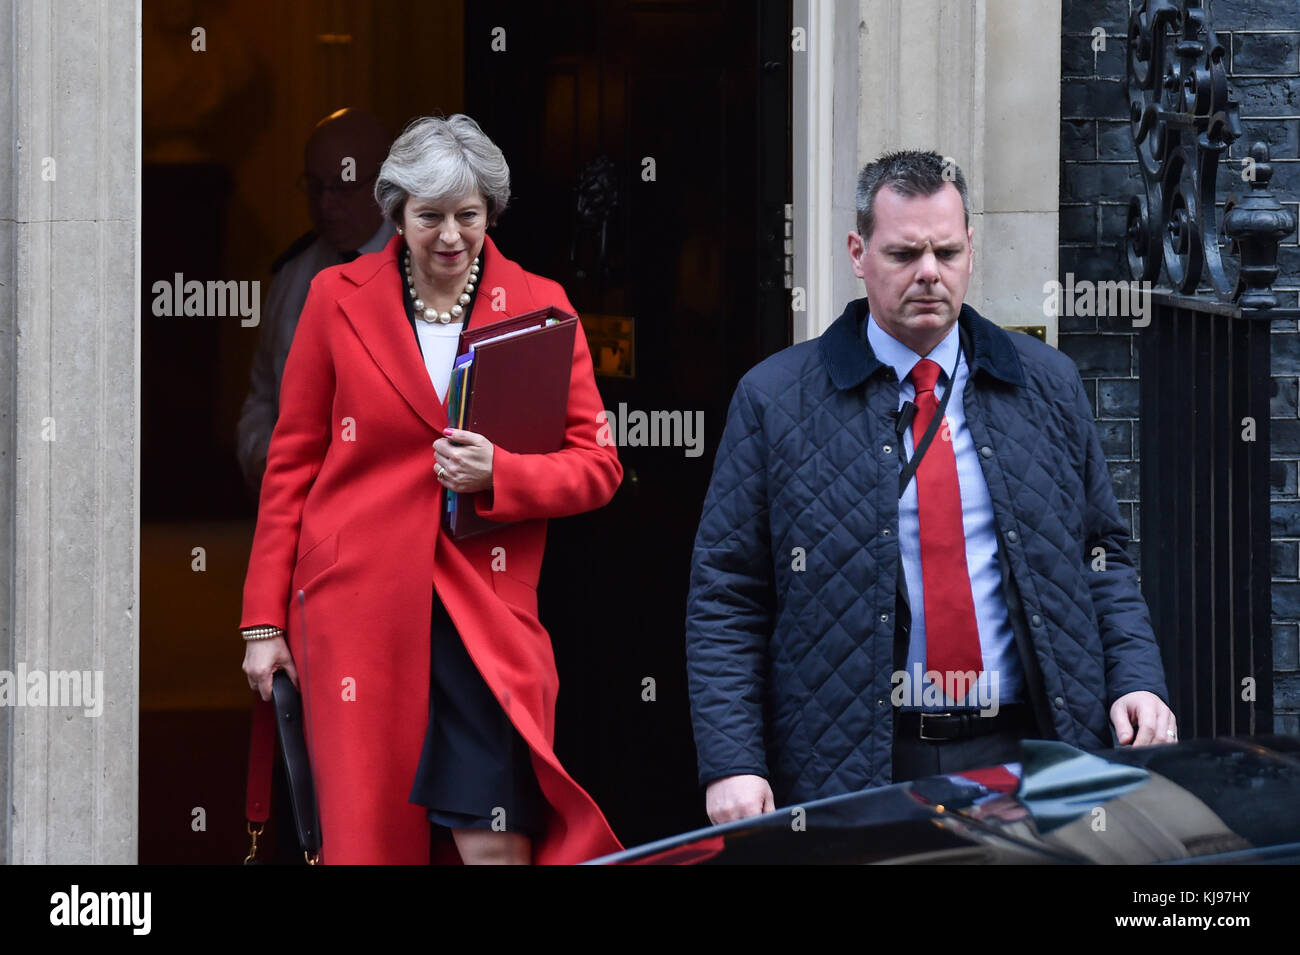 London, United Kingdom. 22th November 2017. Prime Minister Theresa May leaves 10 Downing Street bound for the House Stock Photo